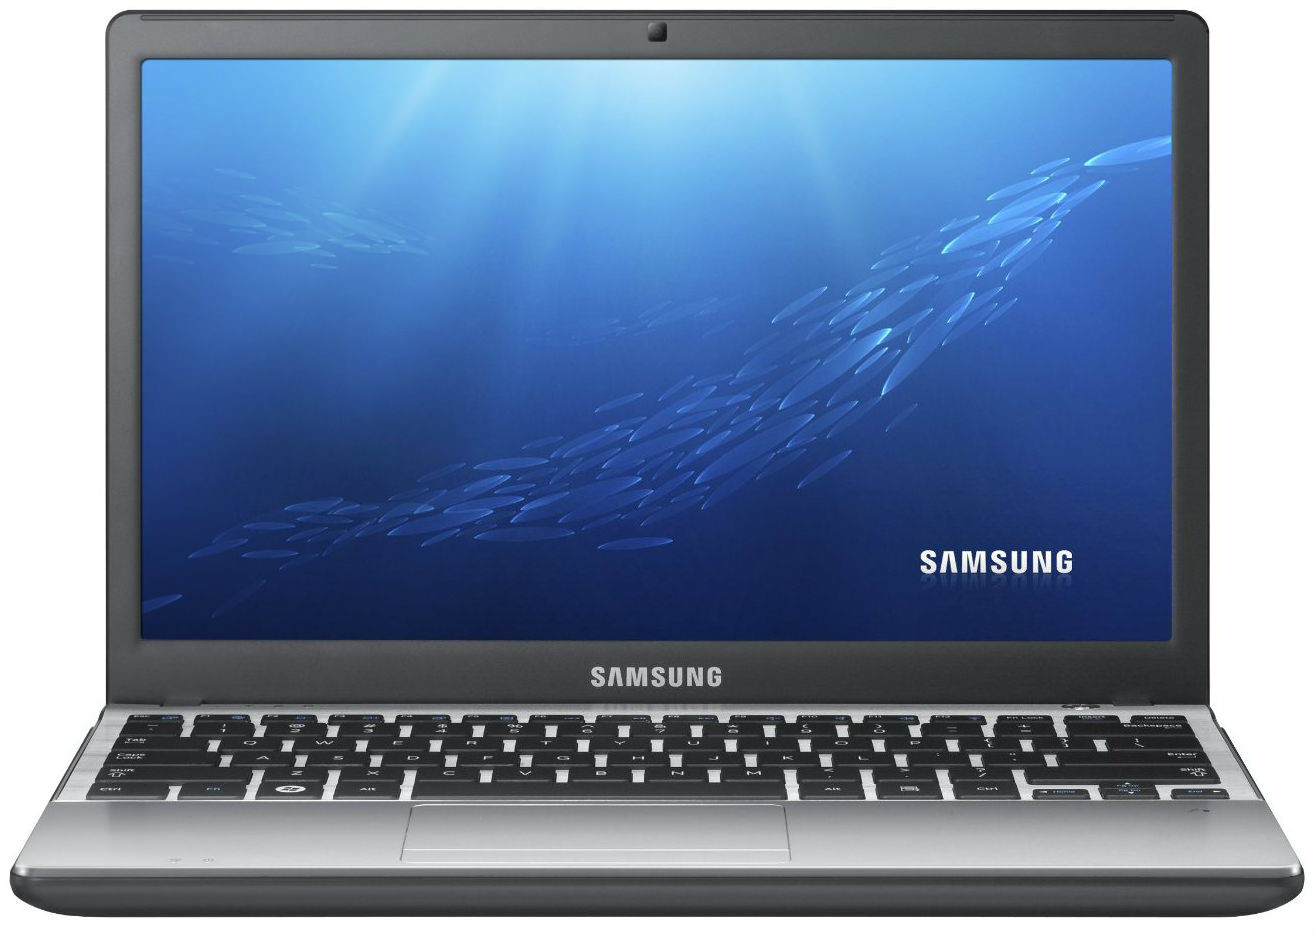 Samsung Series 3 NP350U2B-A03 Laptop (Core i3 2nd Gen/4 GB/500 GB/Windows 7) Price